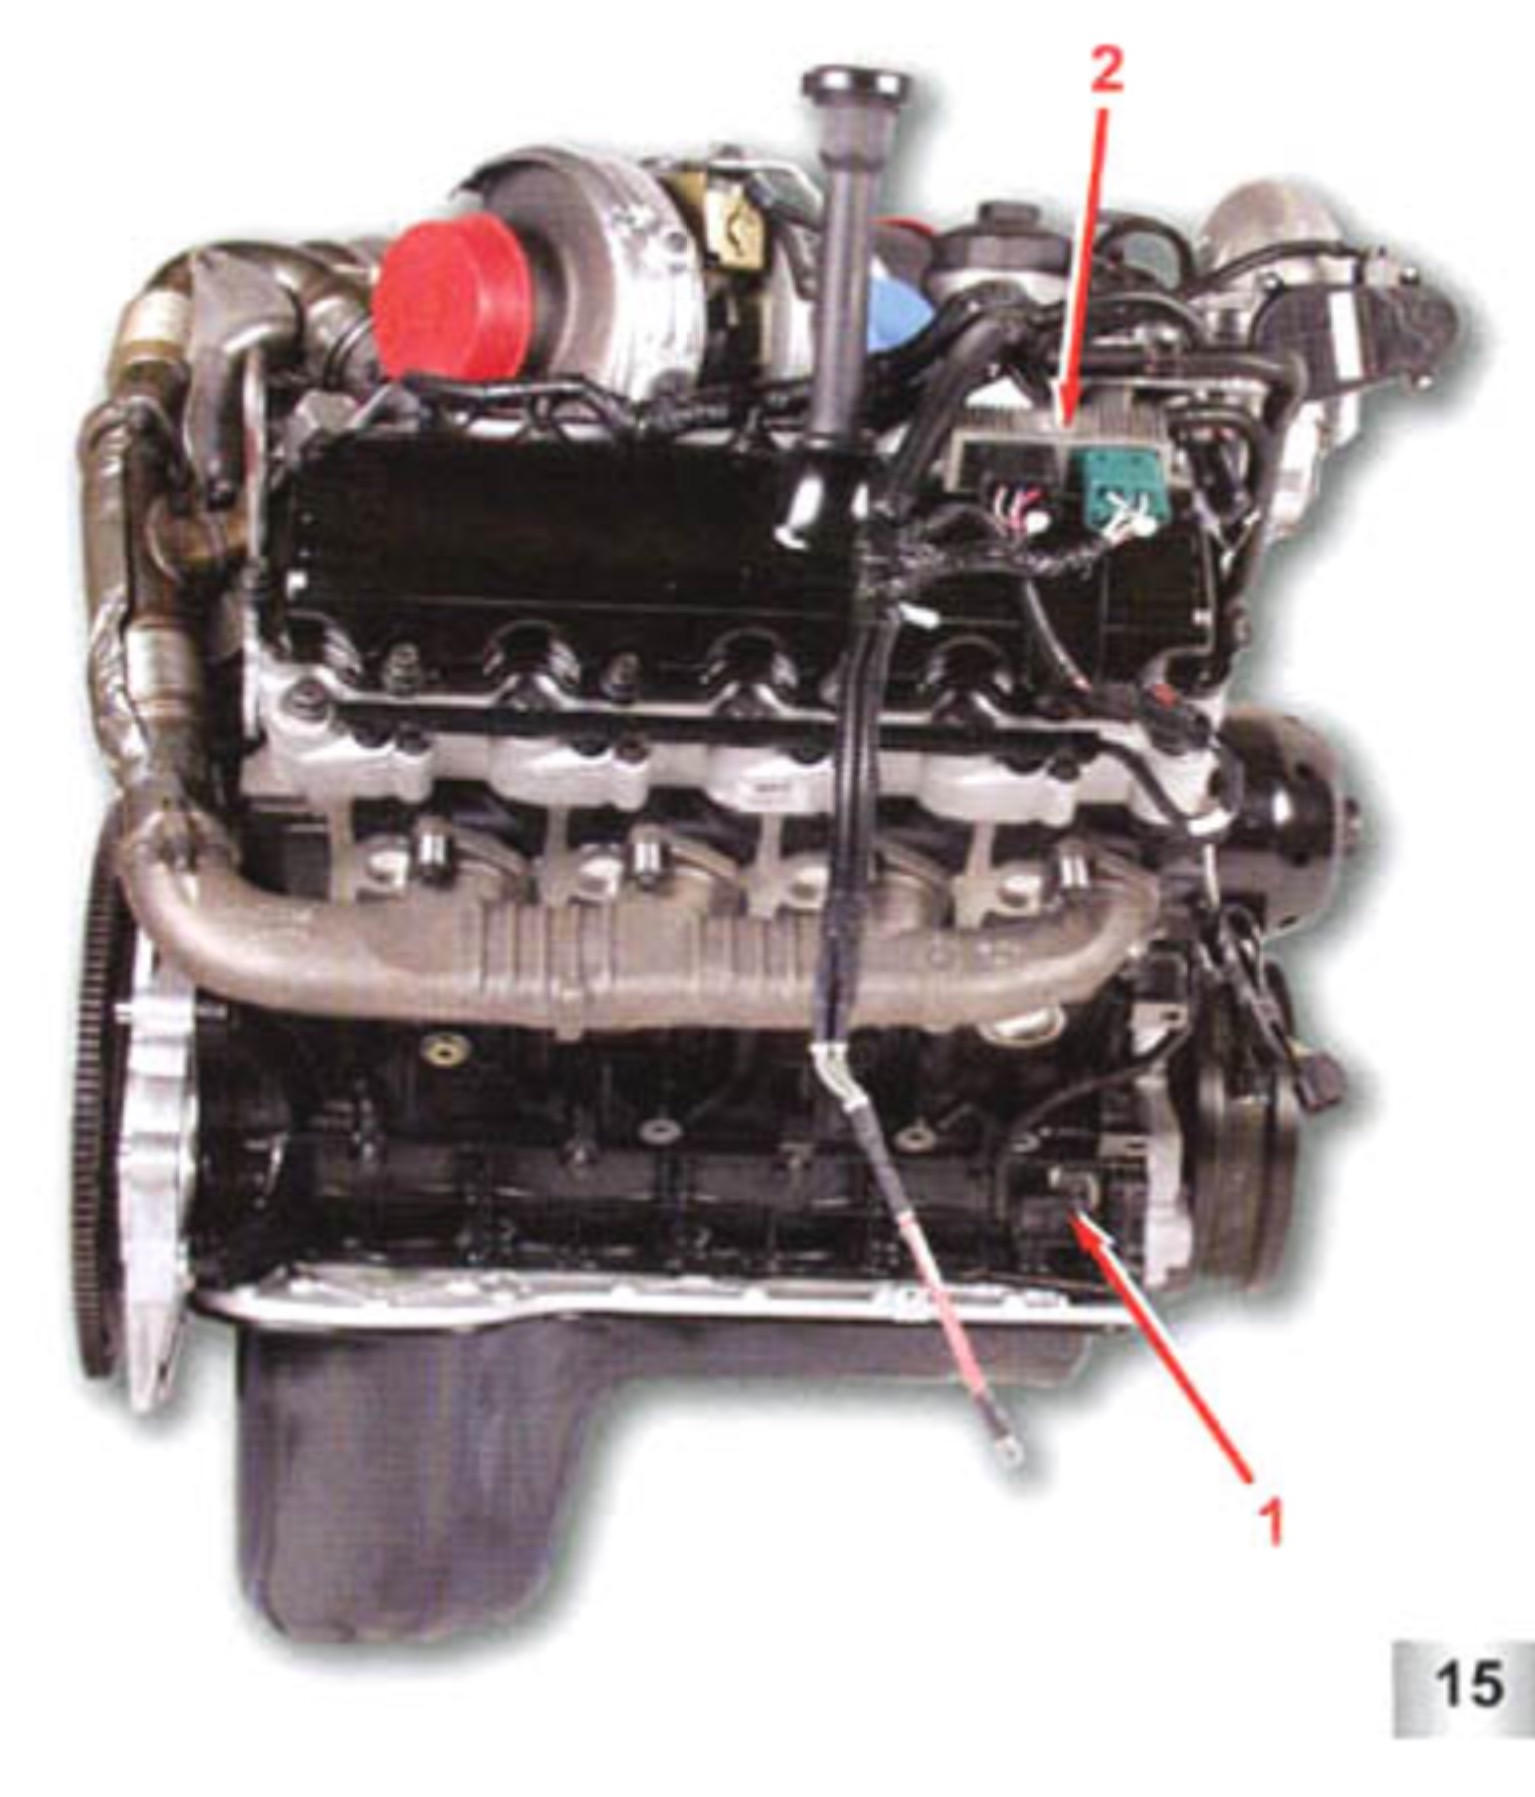 hight resolution of 2008 ford f350 sel engine diagram 2004 ford focus diagram ford f 250 trailer plug